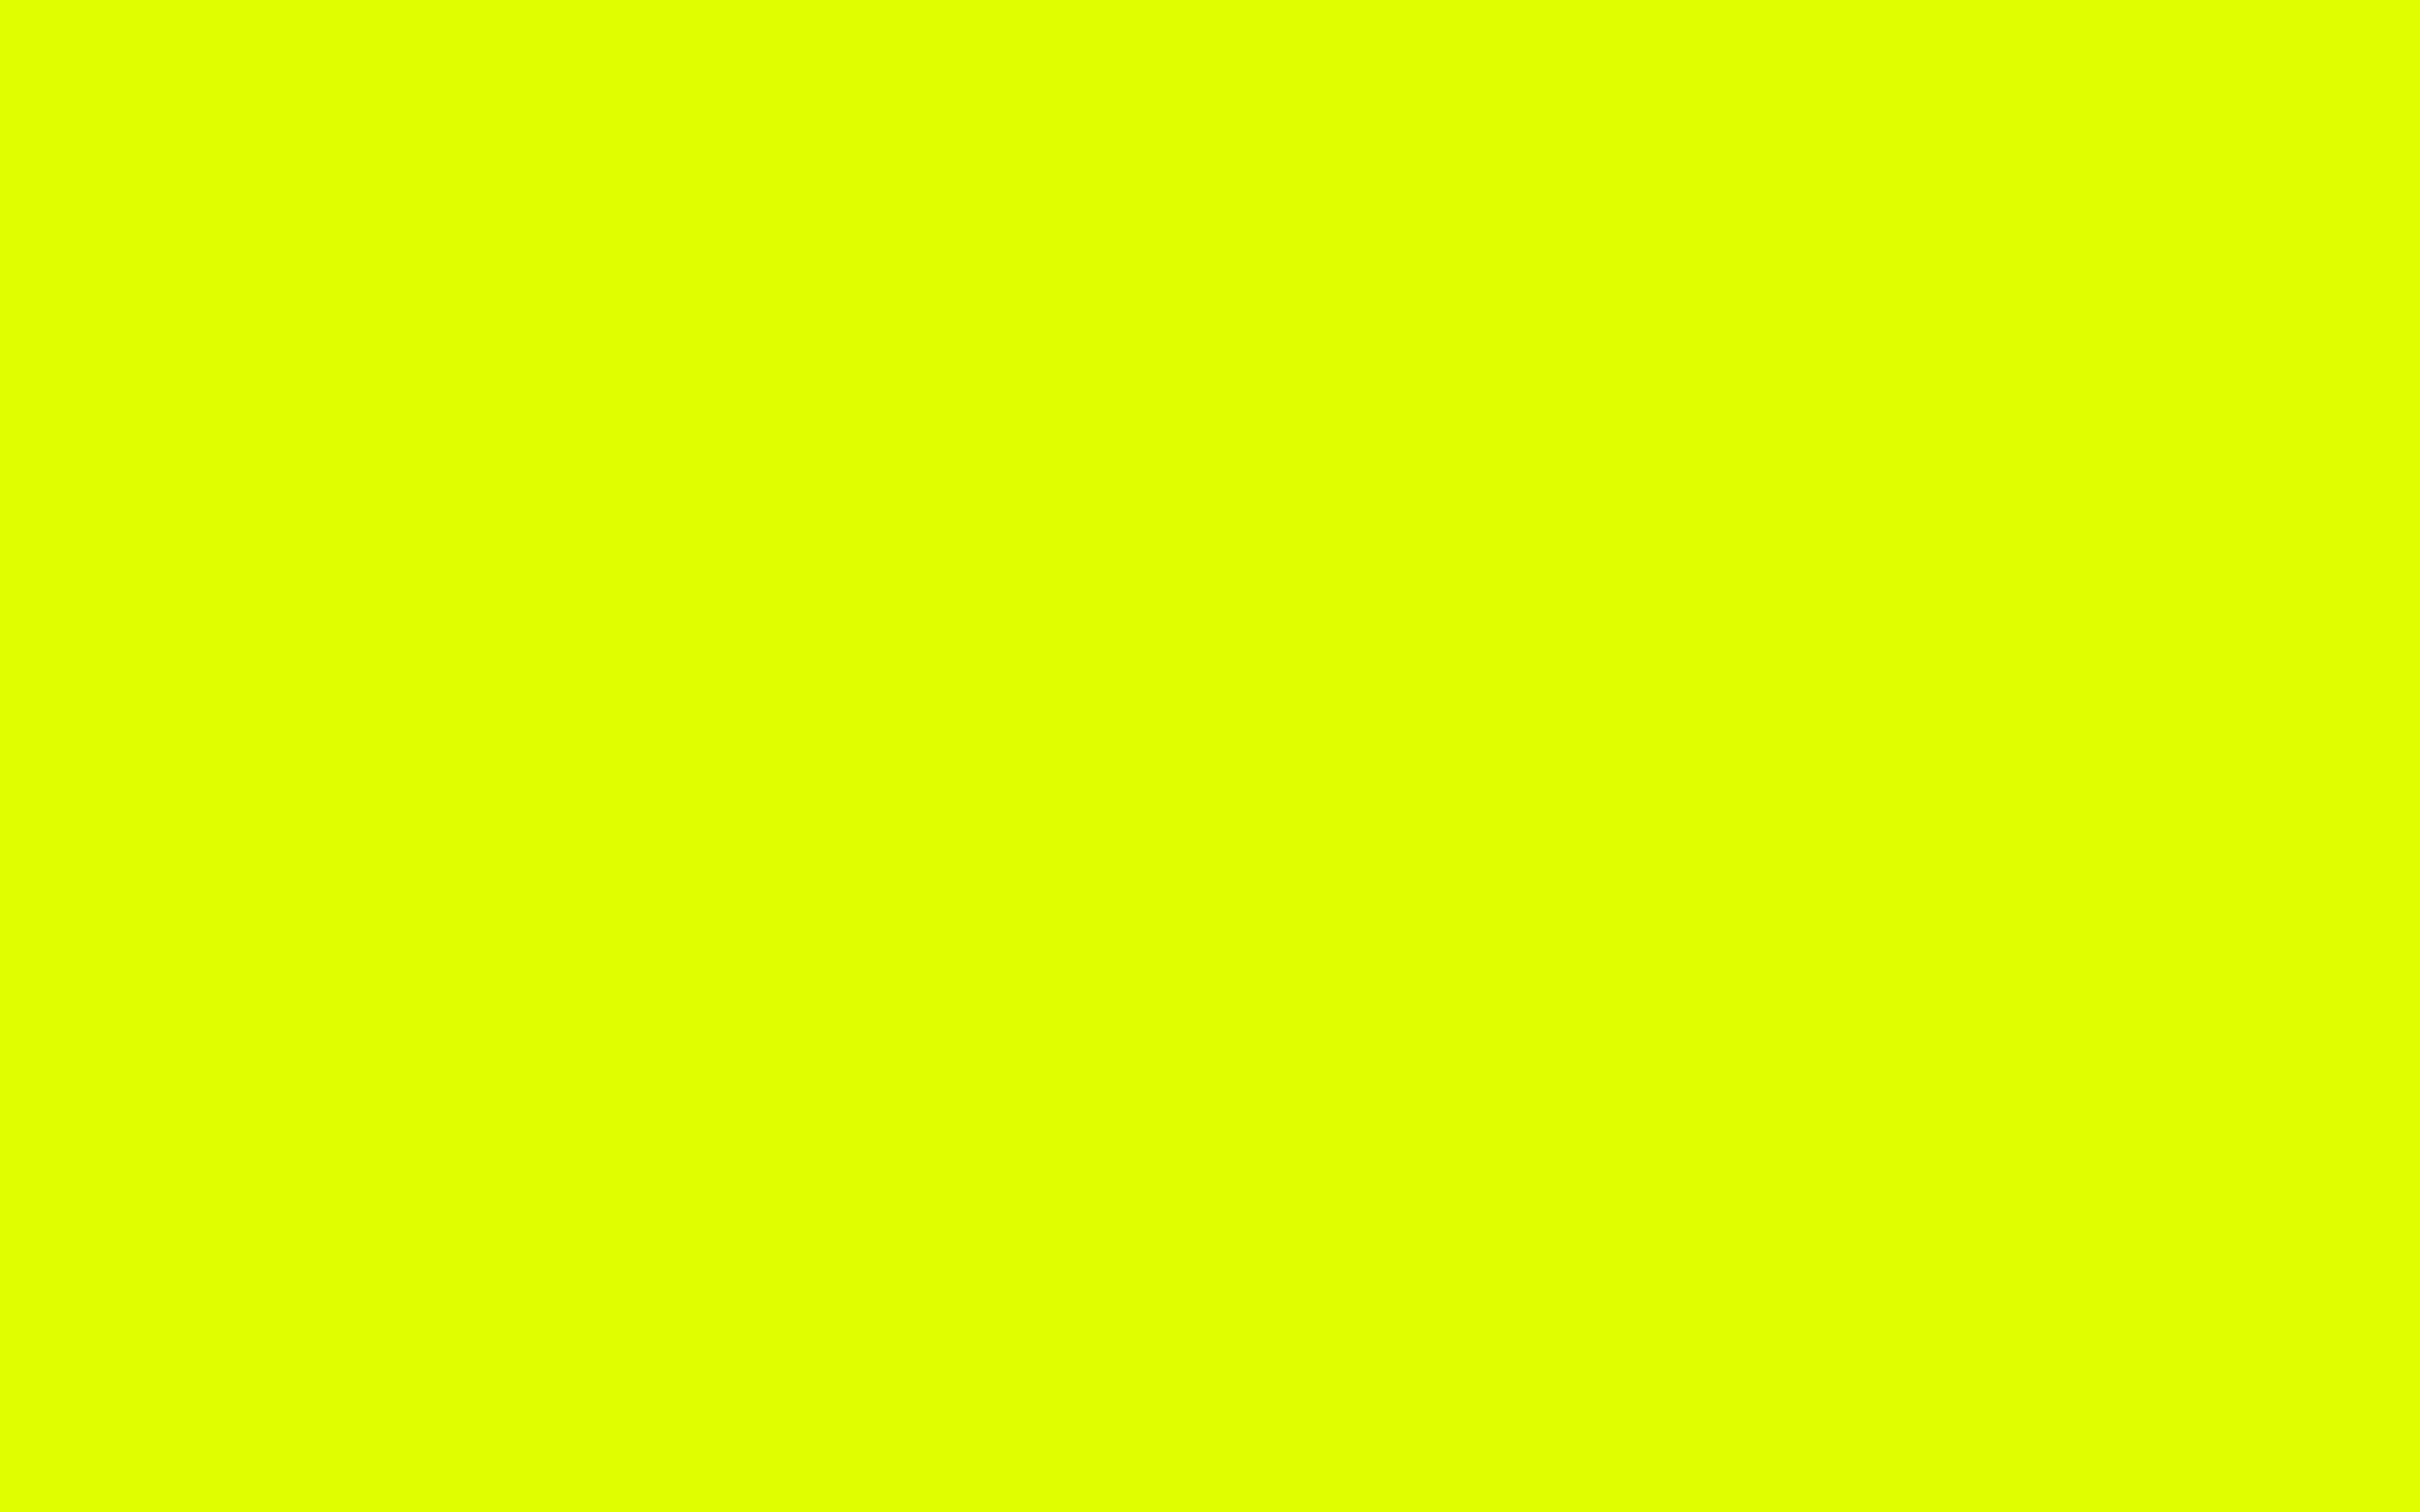 2560x1600 Chartreuse Traditional Solid Color Background